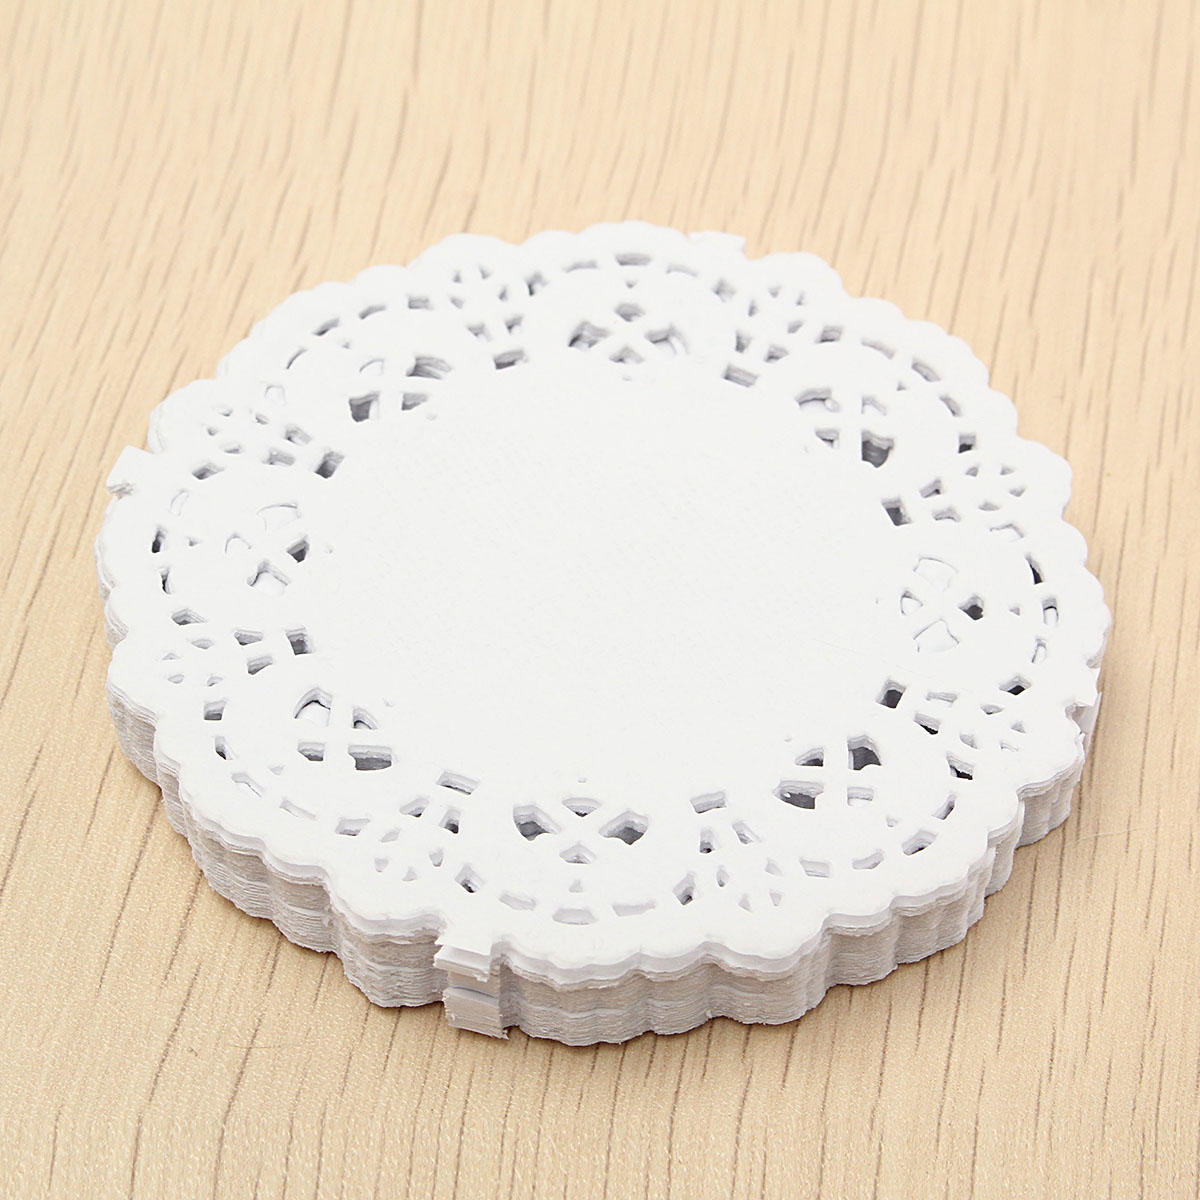 3 Pretty Designs of Craft Paper Doilies 180pcs 35 White Paper Lace Round Doilies Wedding Party Craft